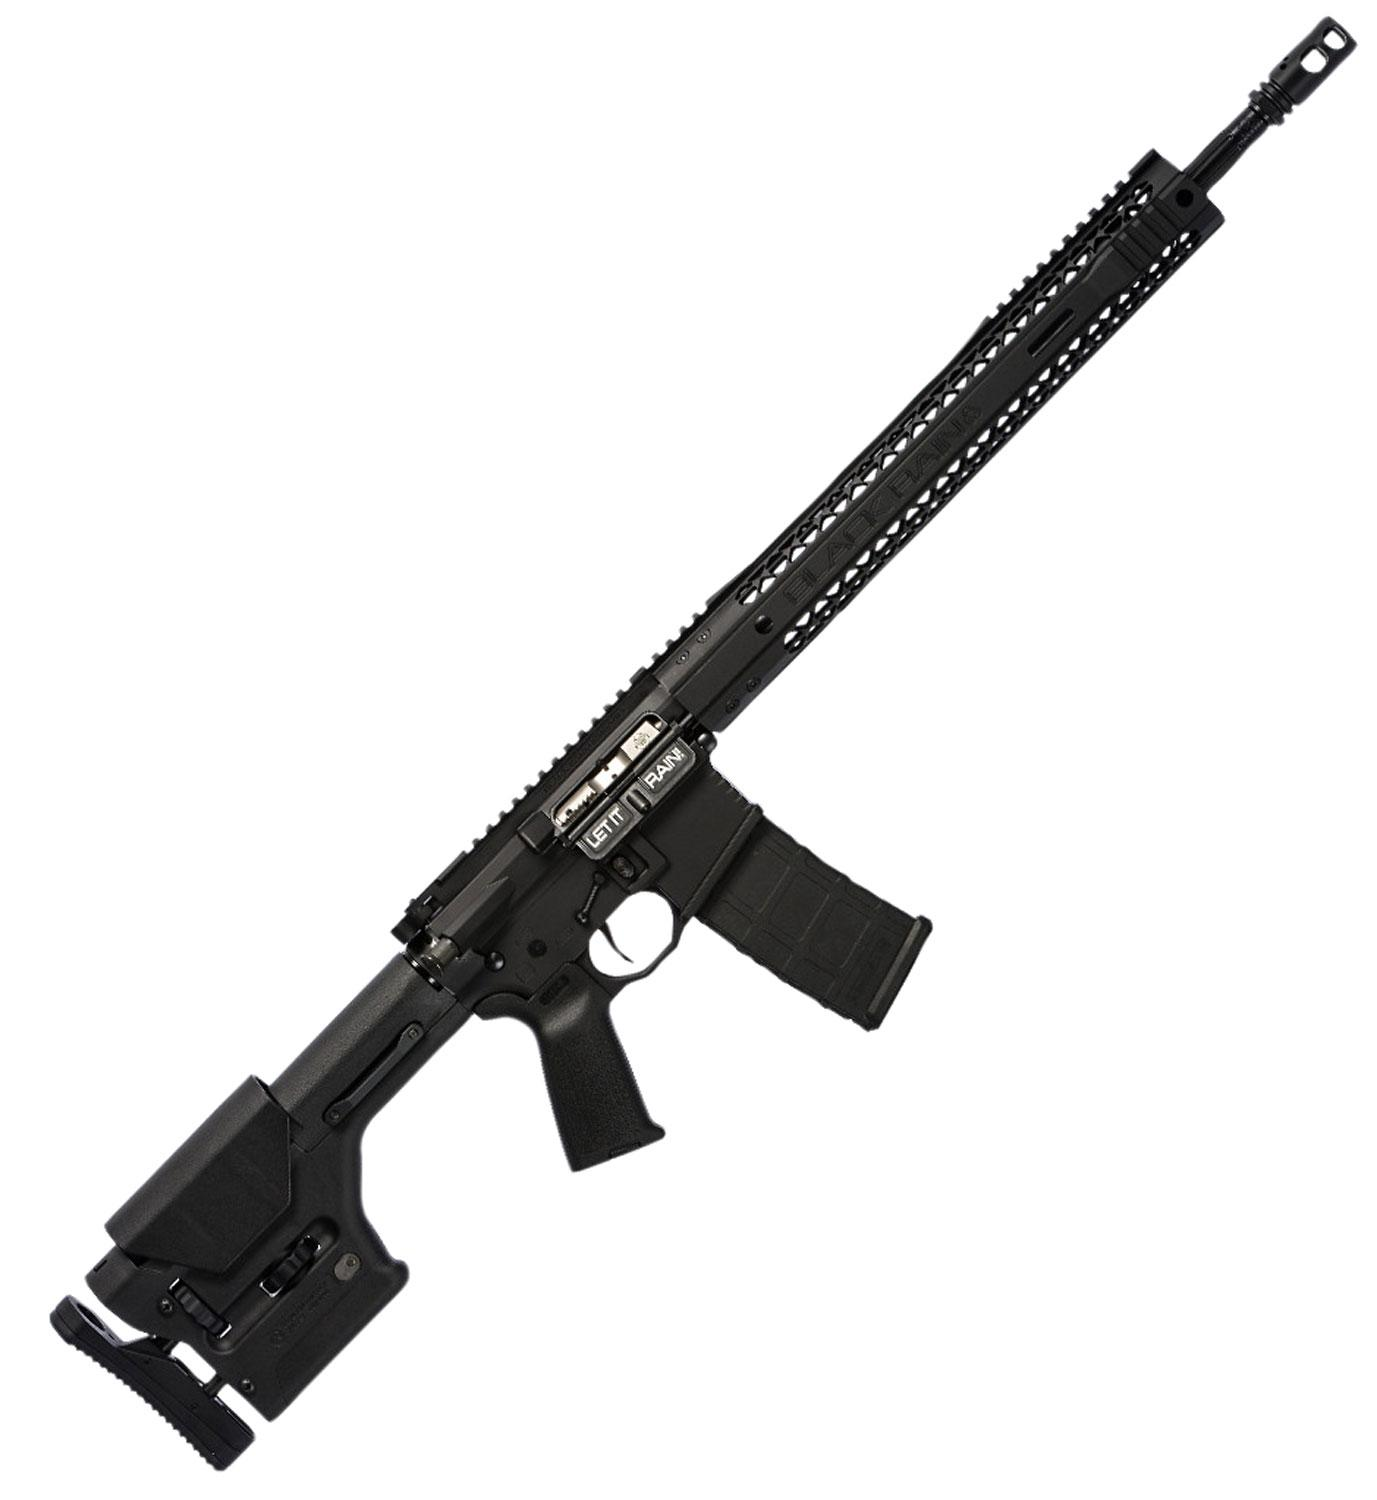 Black Rain Bropredatorb Hunting Bro Predator Semi- Automatic 223 Remington/5.56 Nato 18